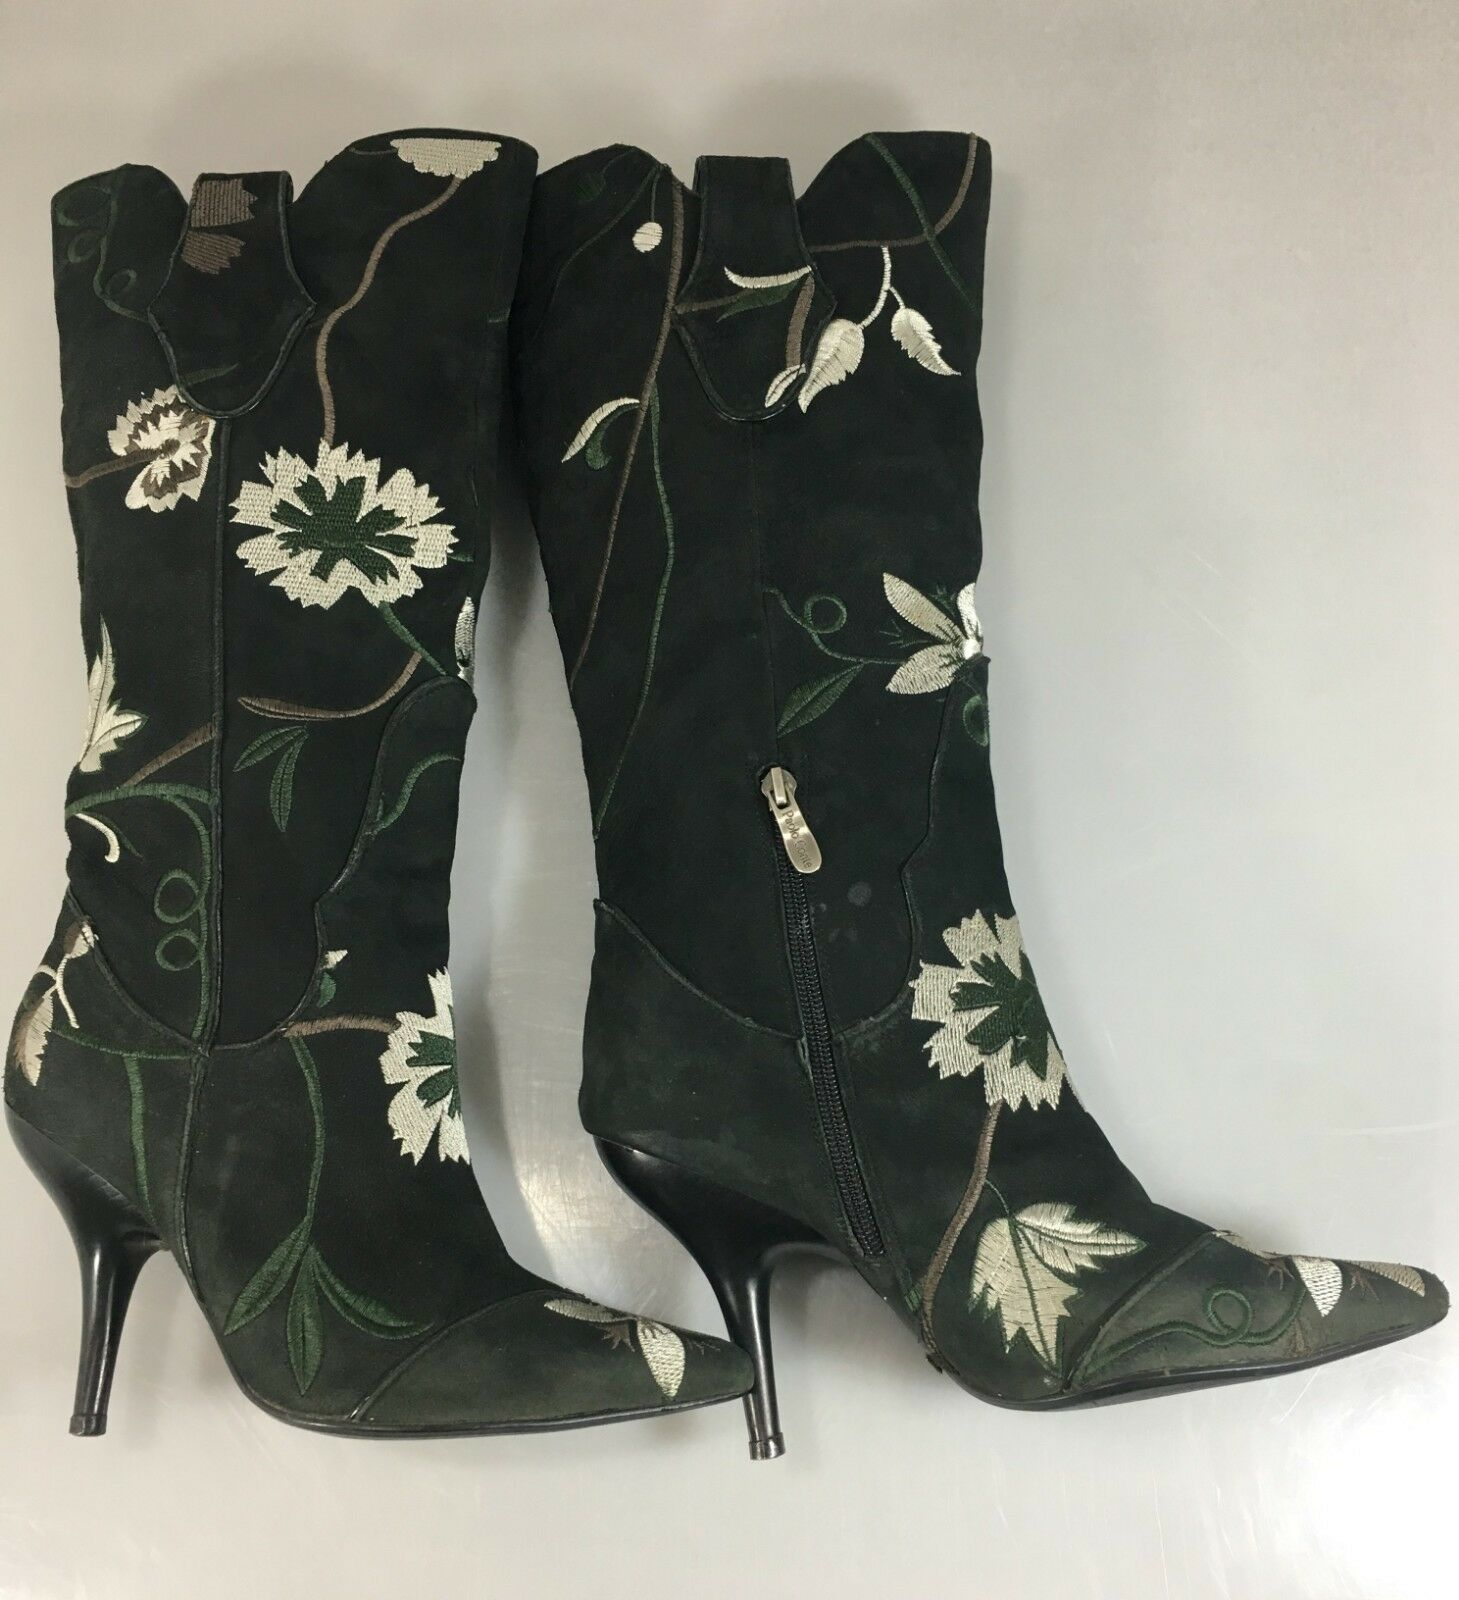 Paolo Conte Damenschuhe Heels 36EU 6US Floral EmbroideROT Suede 4